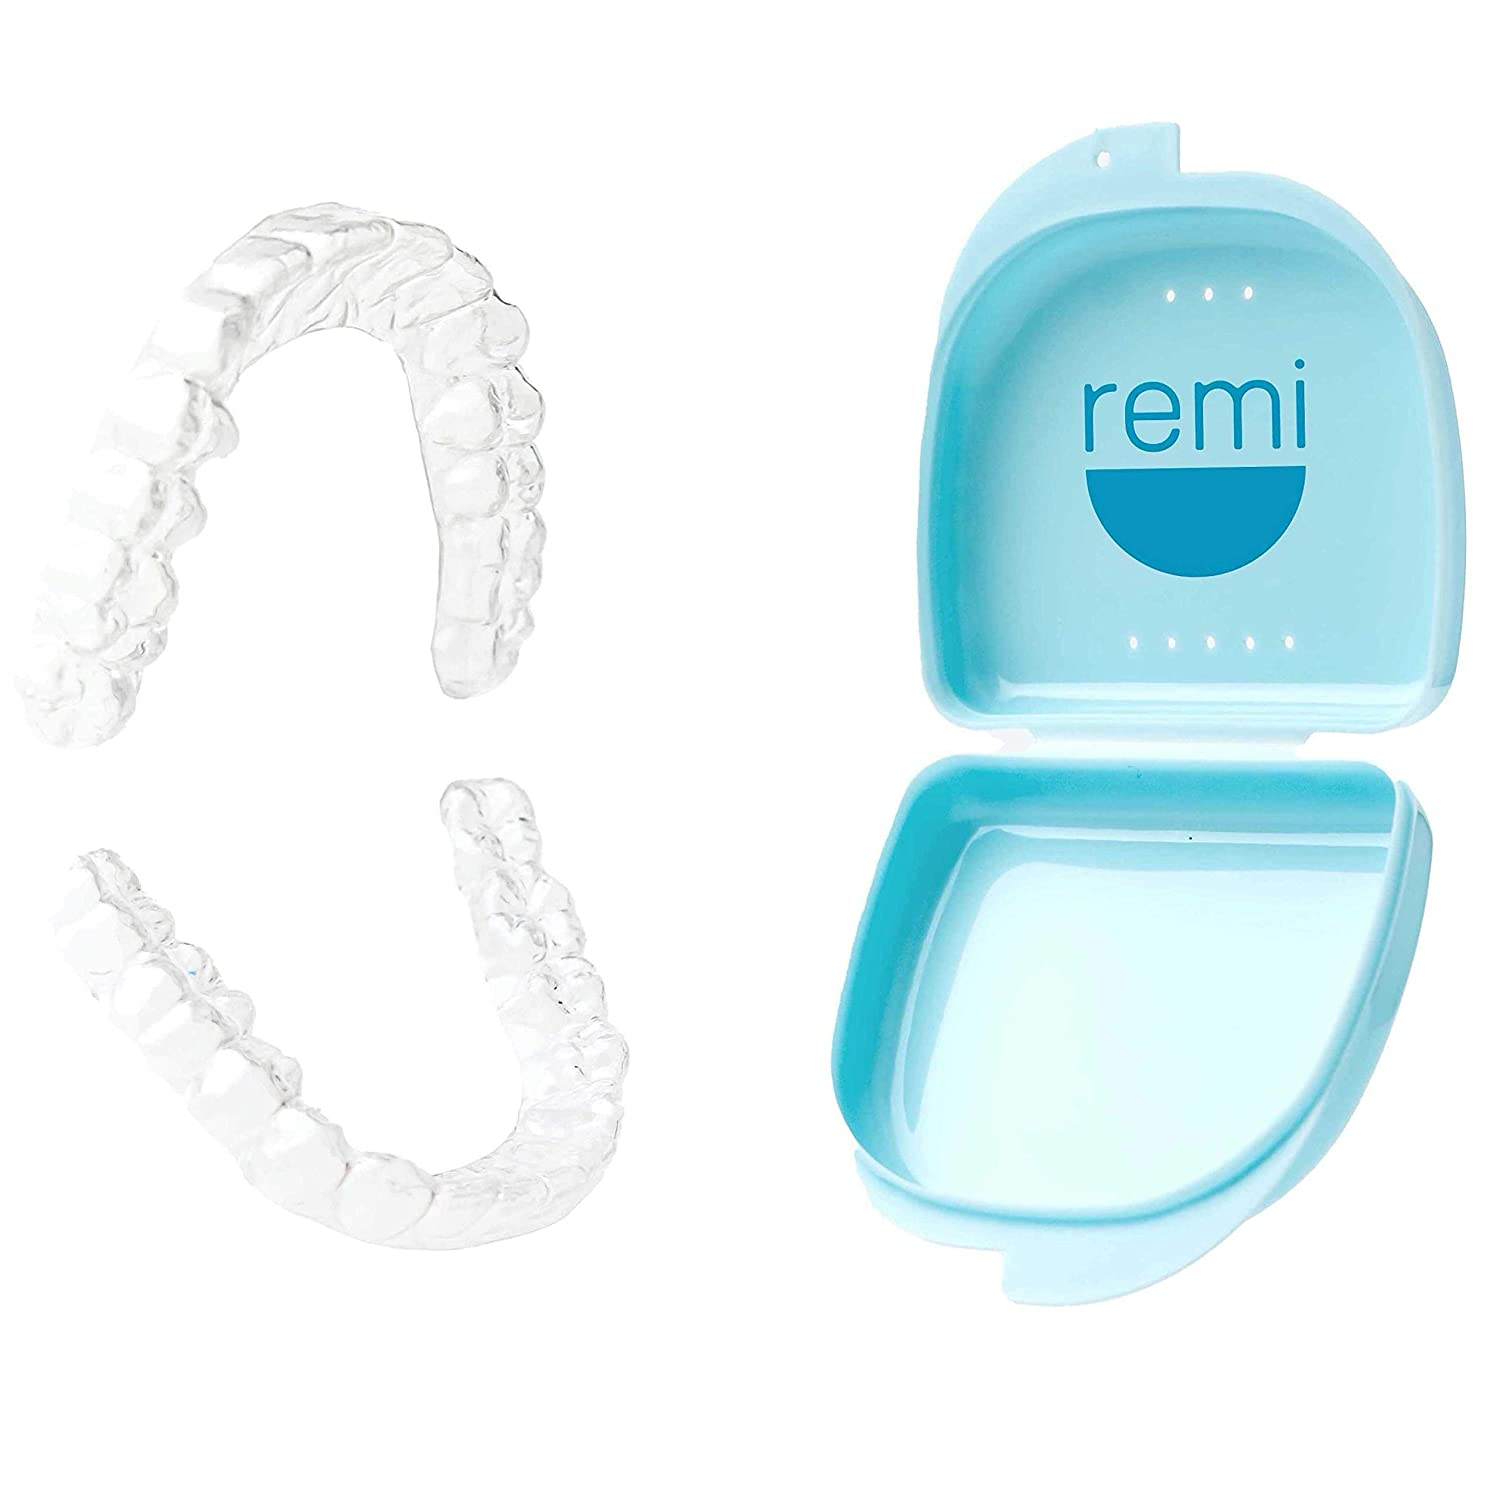 Remi At-Home Custom Night Guard Kit - Create The Best Fitting Dental Grade Top And Bottom (2) Mouth Guards for Grinding Teeth (Bruxism) & TMJ Relief Night Guard